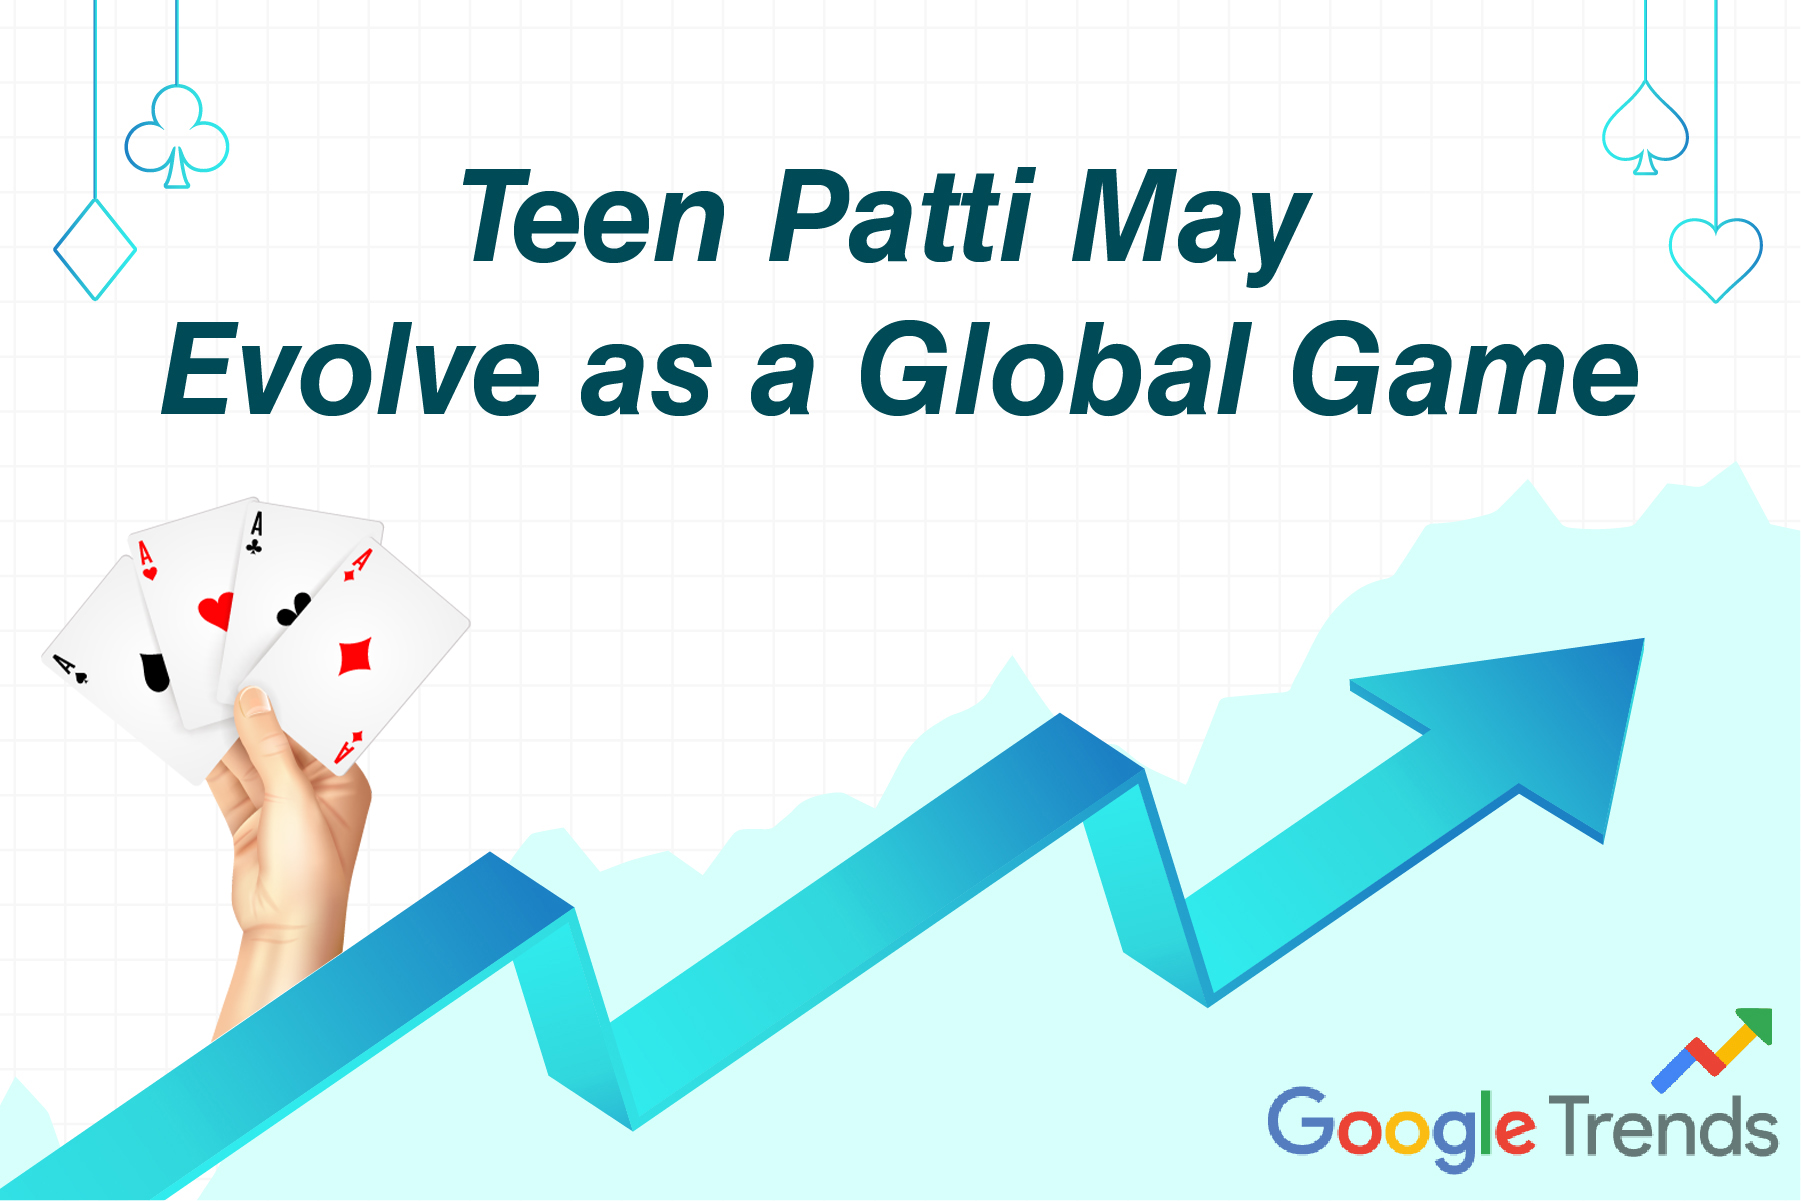 Teen Patti May Evolve as A Global Game; Google Trends Are Positive Too